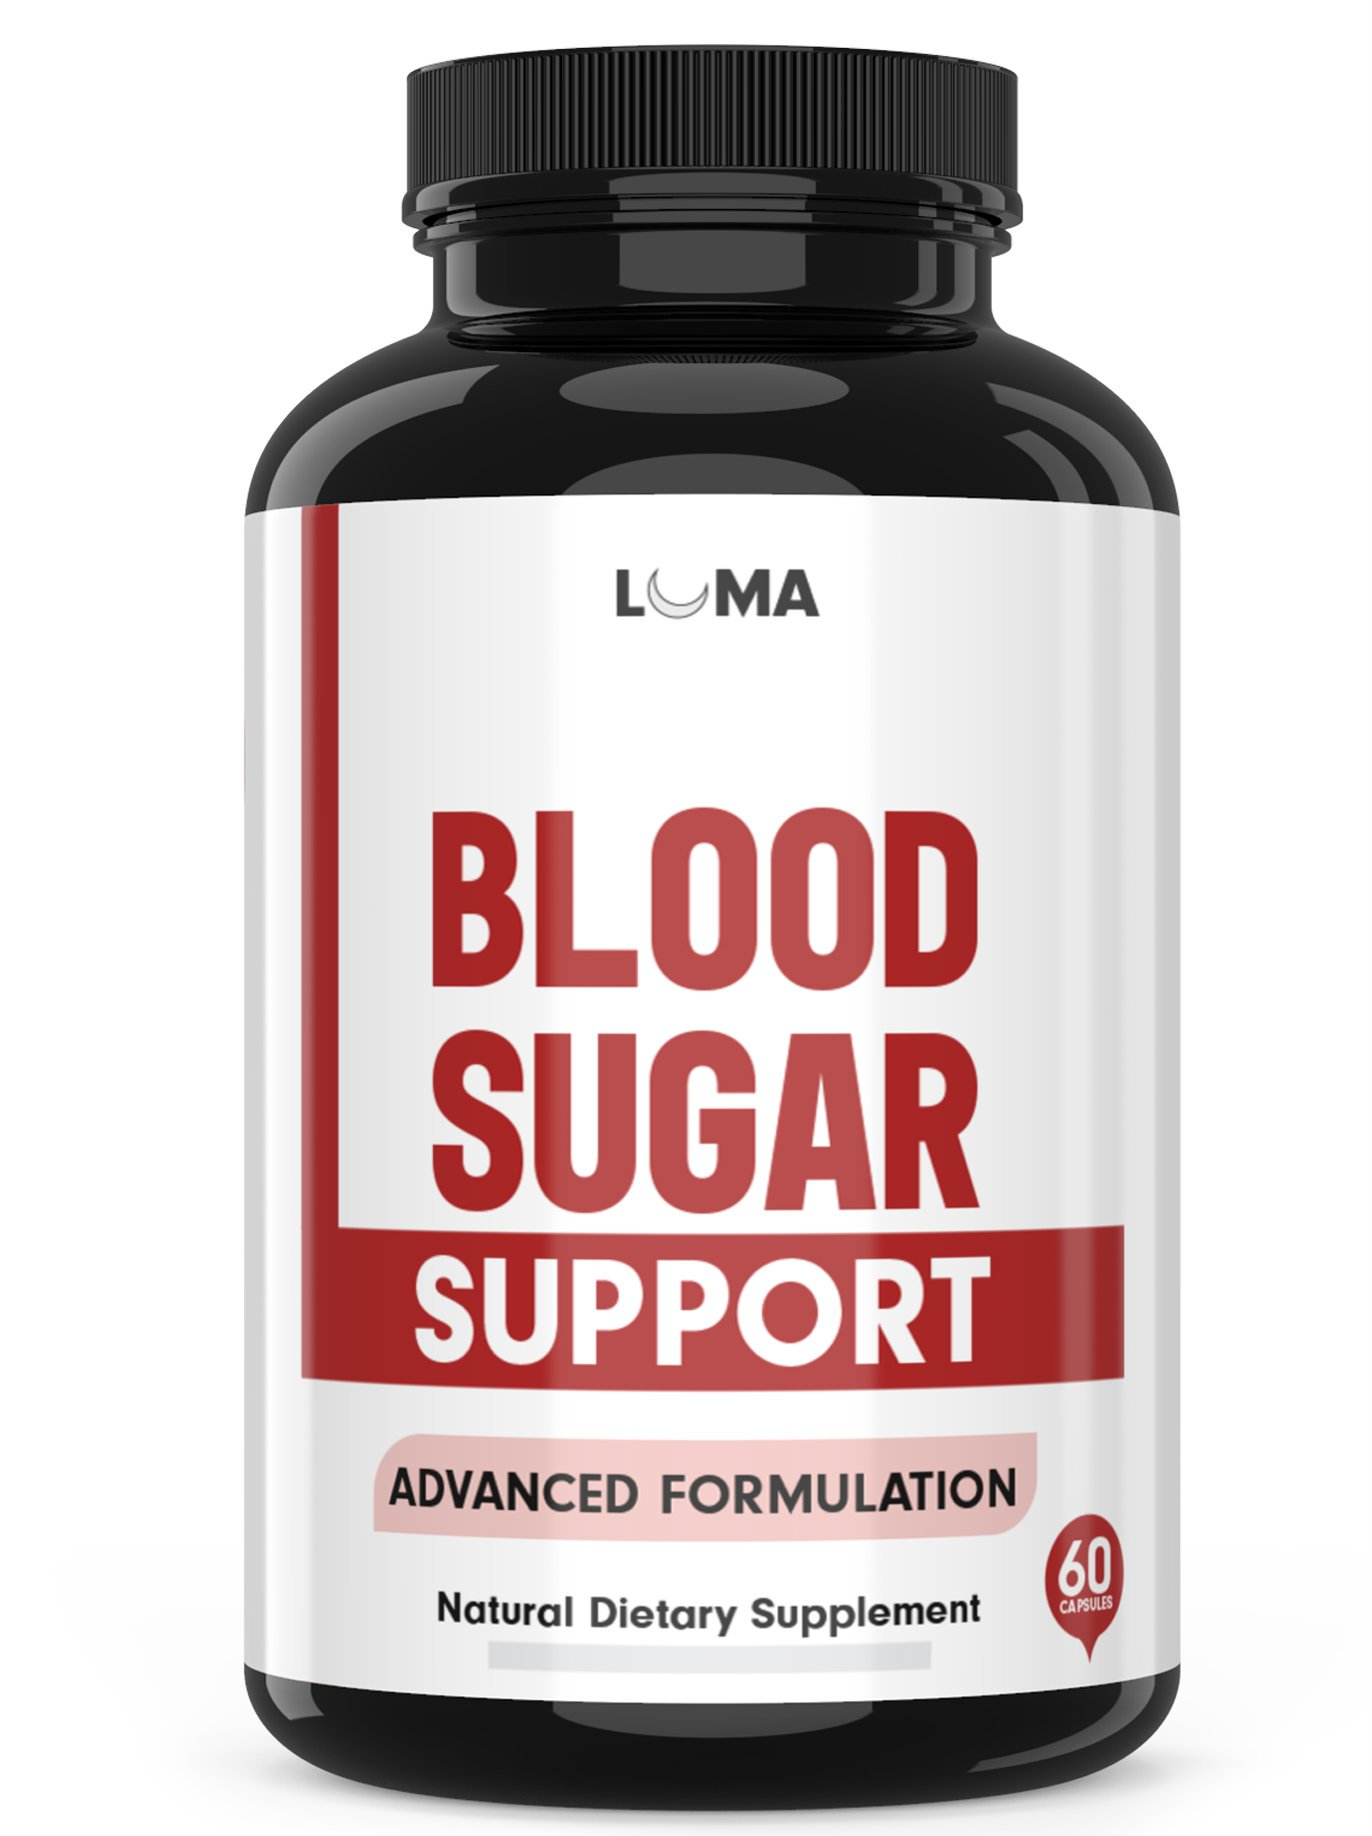 Natural Blood Sugar Support Supplements - Supports Healthy and Lower Blood Sugar - Blood Sugar Stabilizer - Top Glucose Support & Control Supplement (60 Capsules)